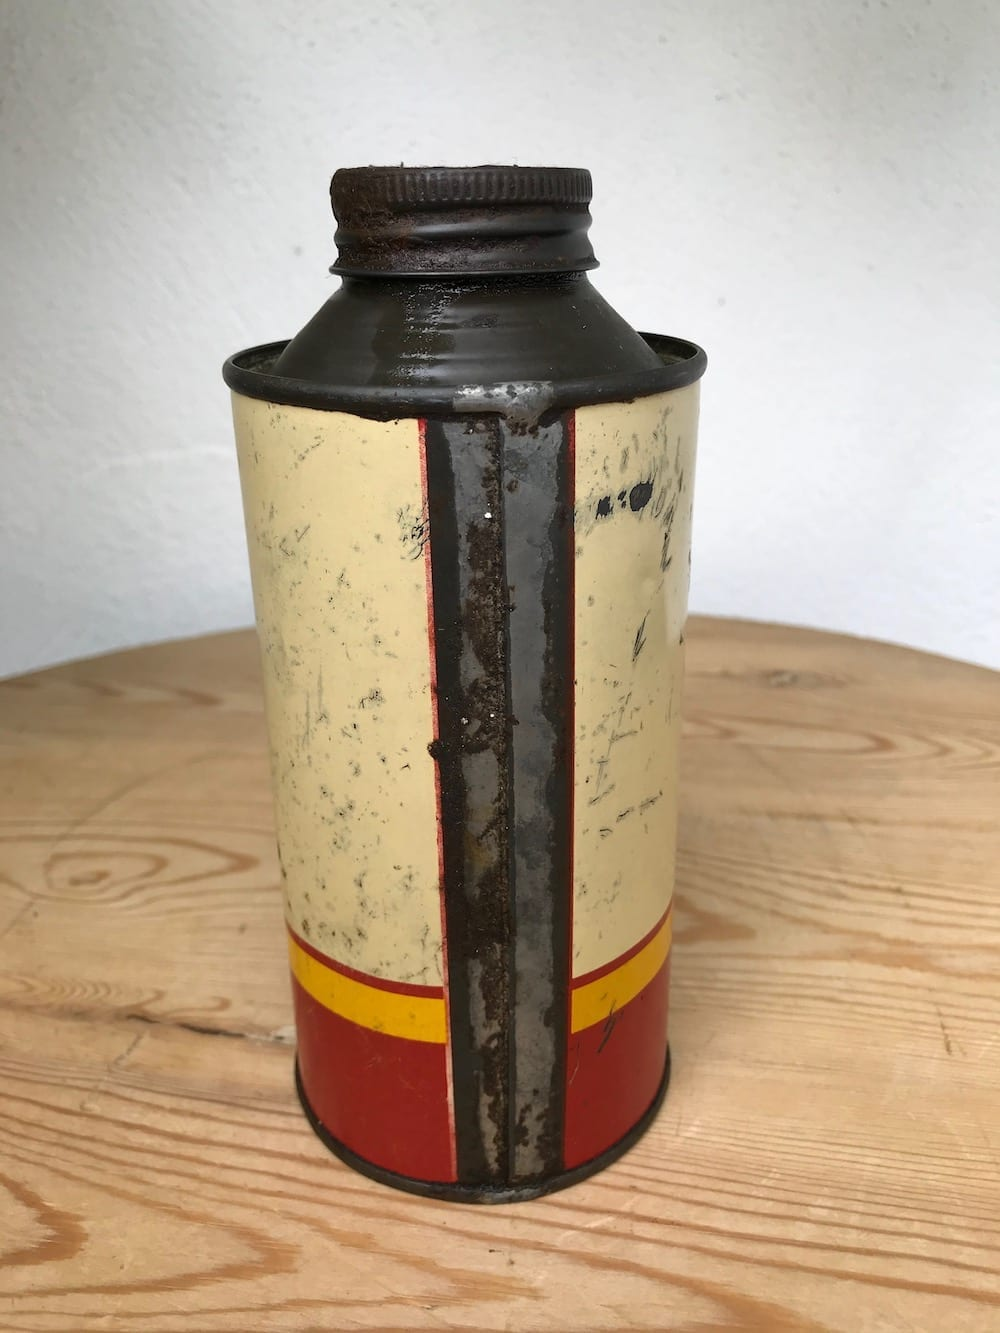 SHELL X-100 MOTOR OIL PINT CAN. - Vintage Motoring UK